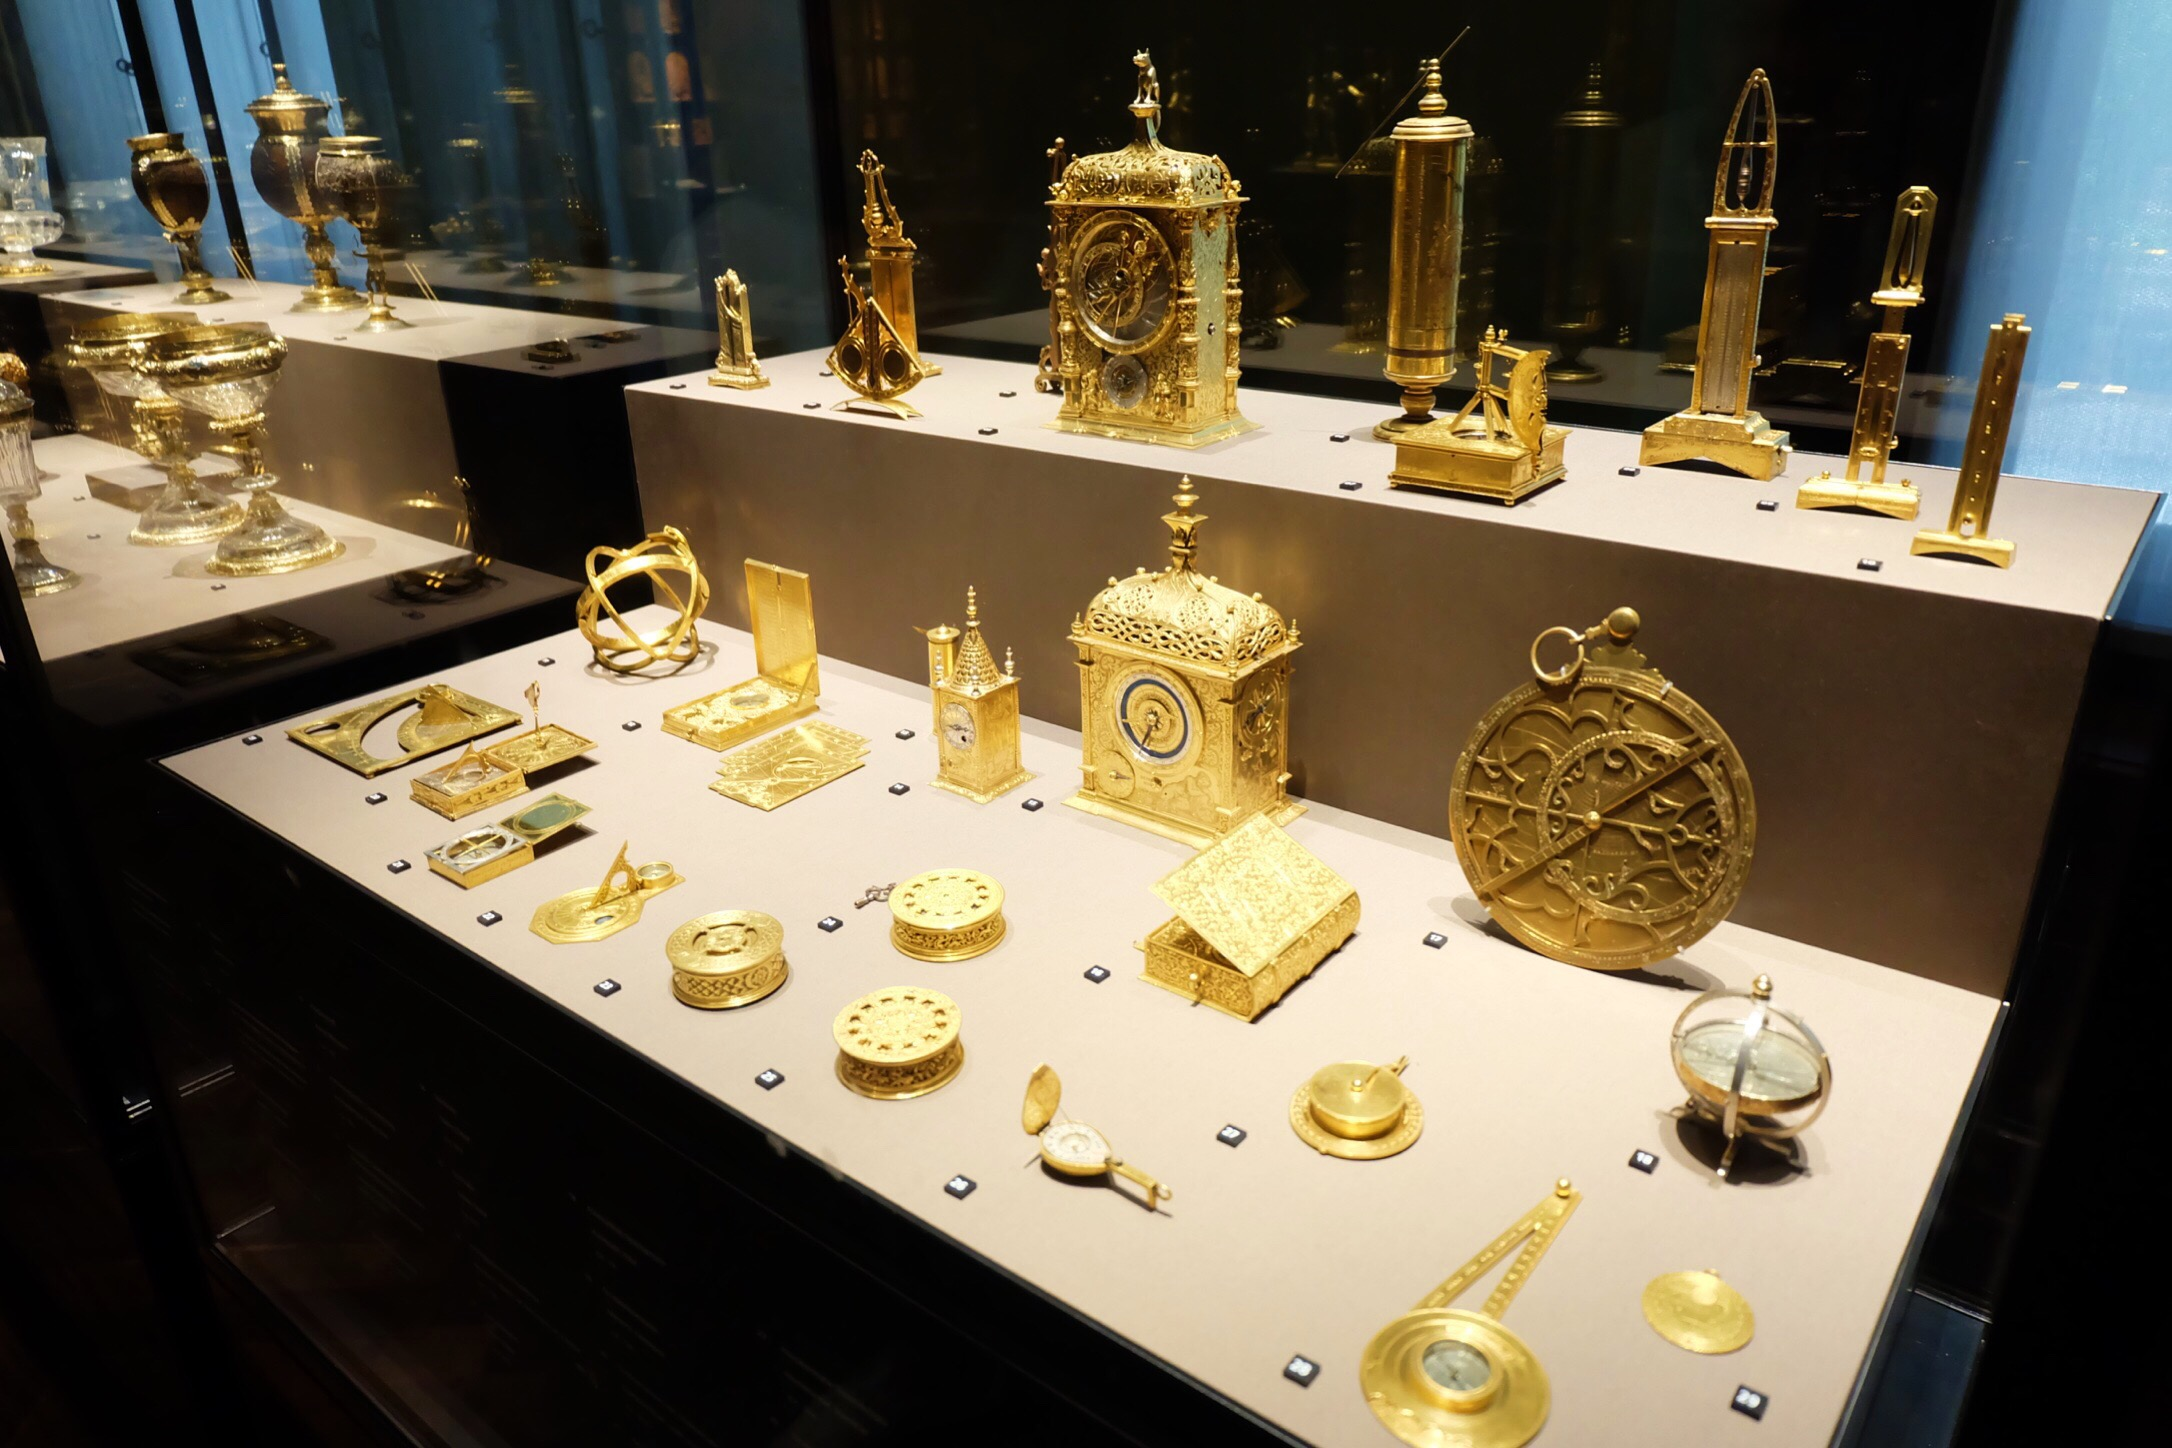 Display at Kunsthistoriches Museum